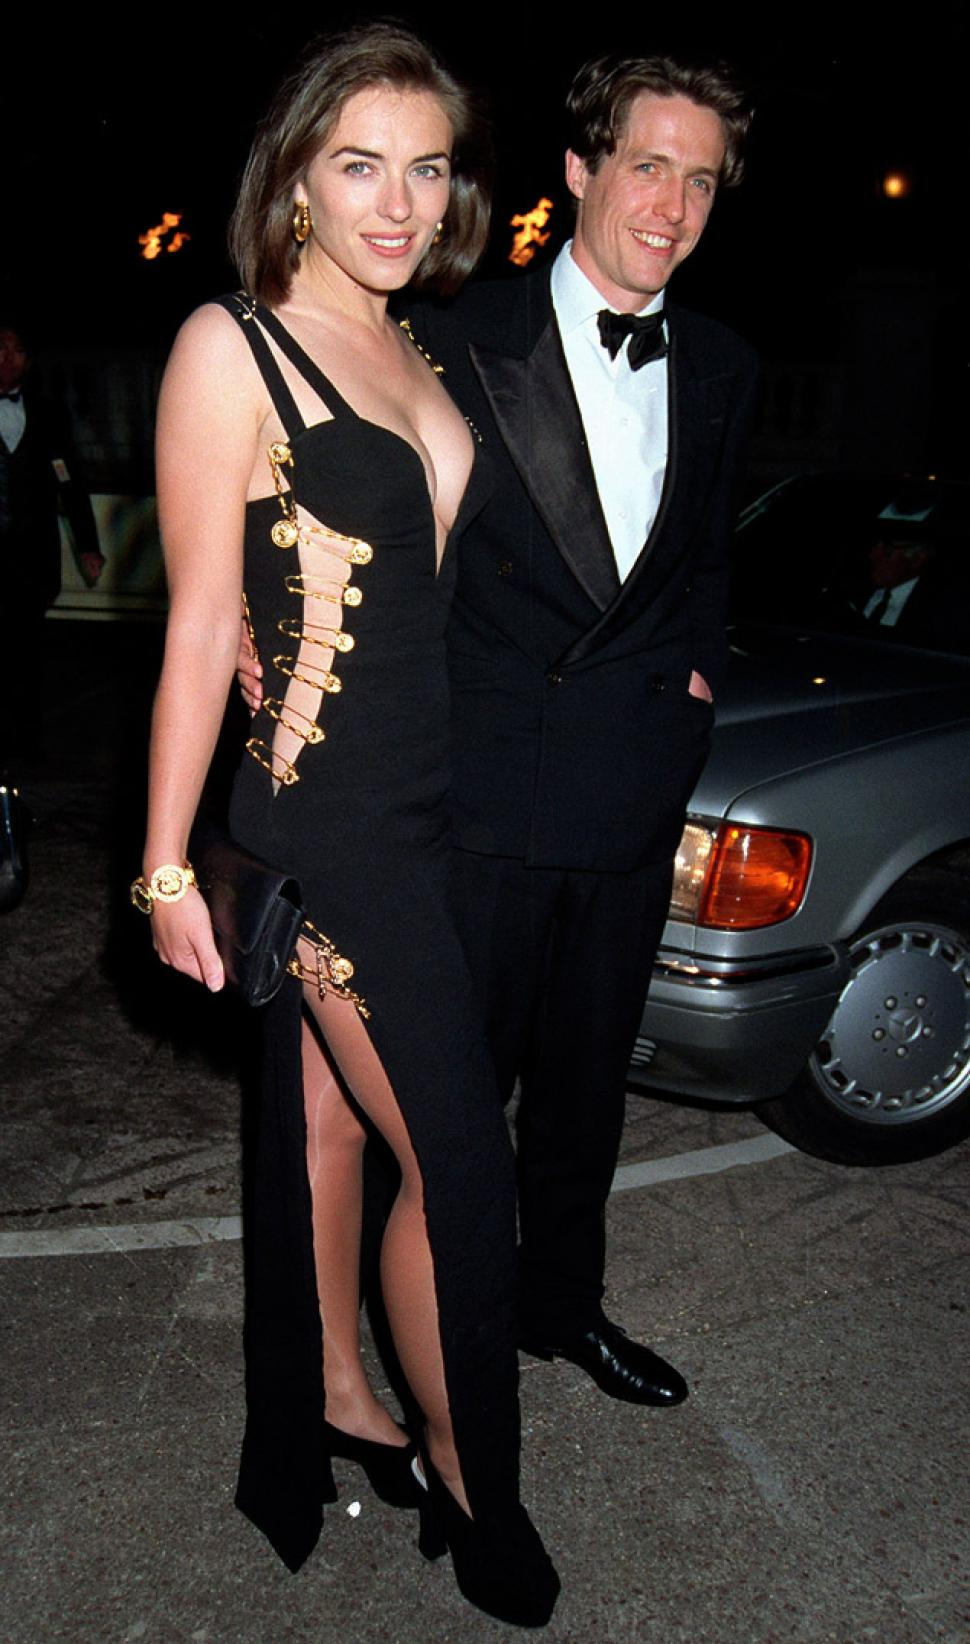 Elizabeth Hurley, 1995, wearing Versace. It certainly put her on the map...